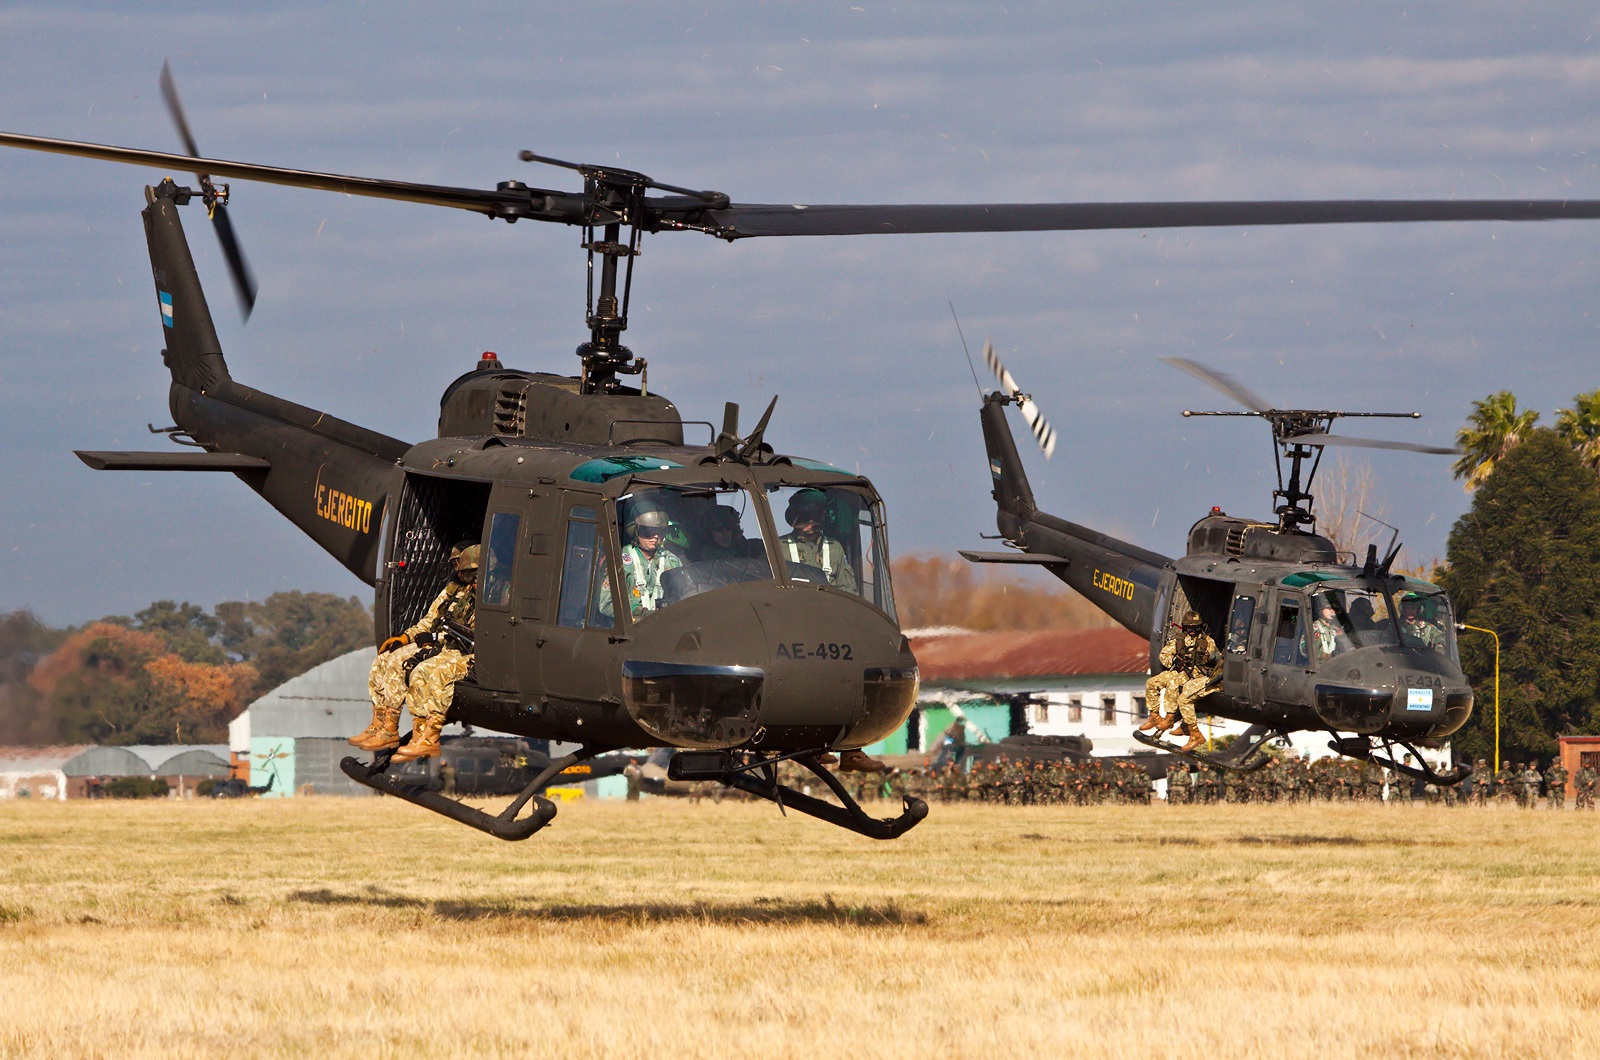 The united states government has cleared the sale of 12 new america made light attack helicopter gunships to the kenyan government as the east african